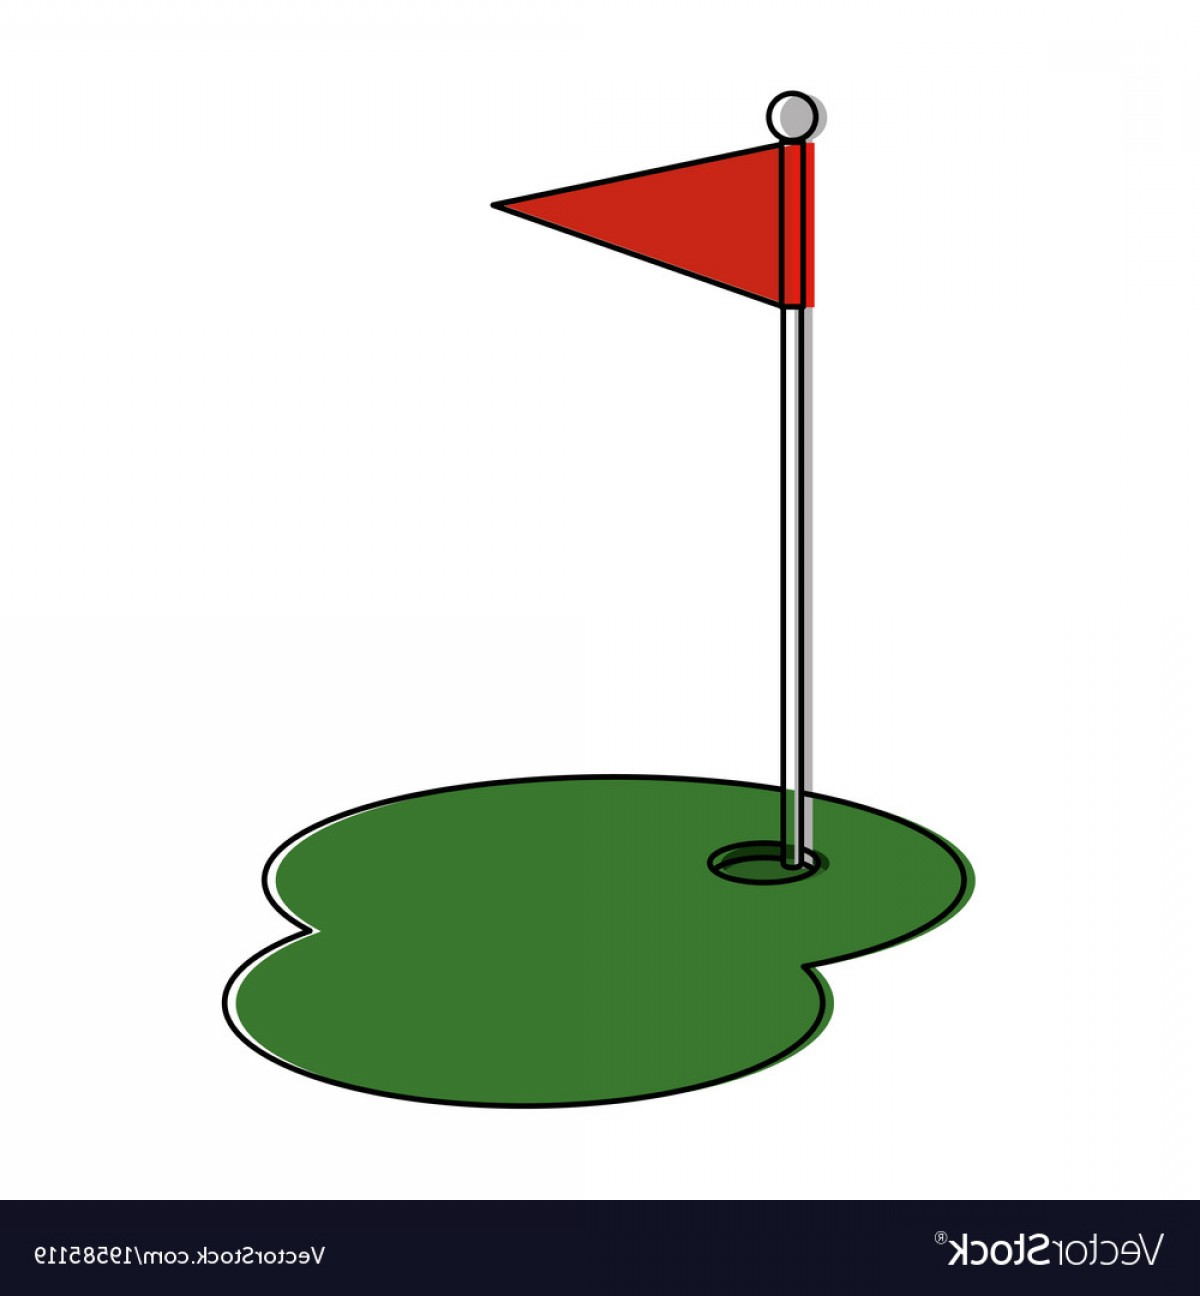 Drawing free download best. Golf clipart flag